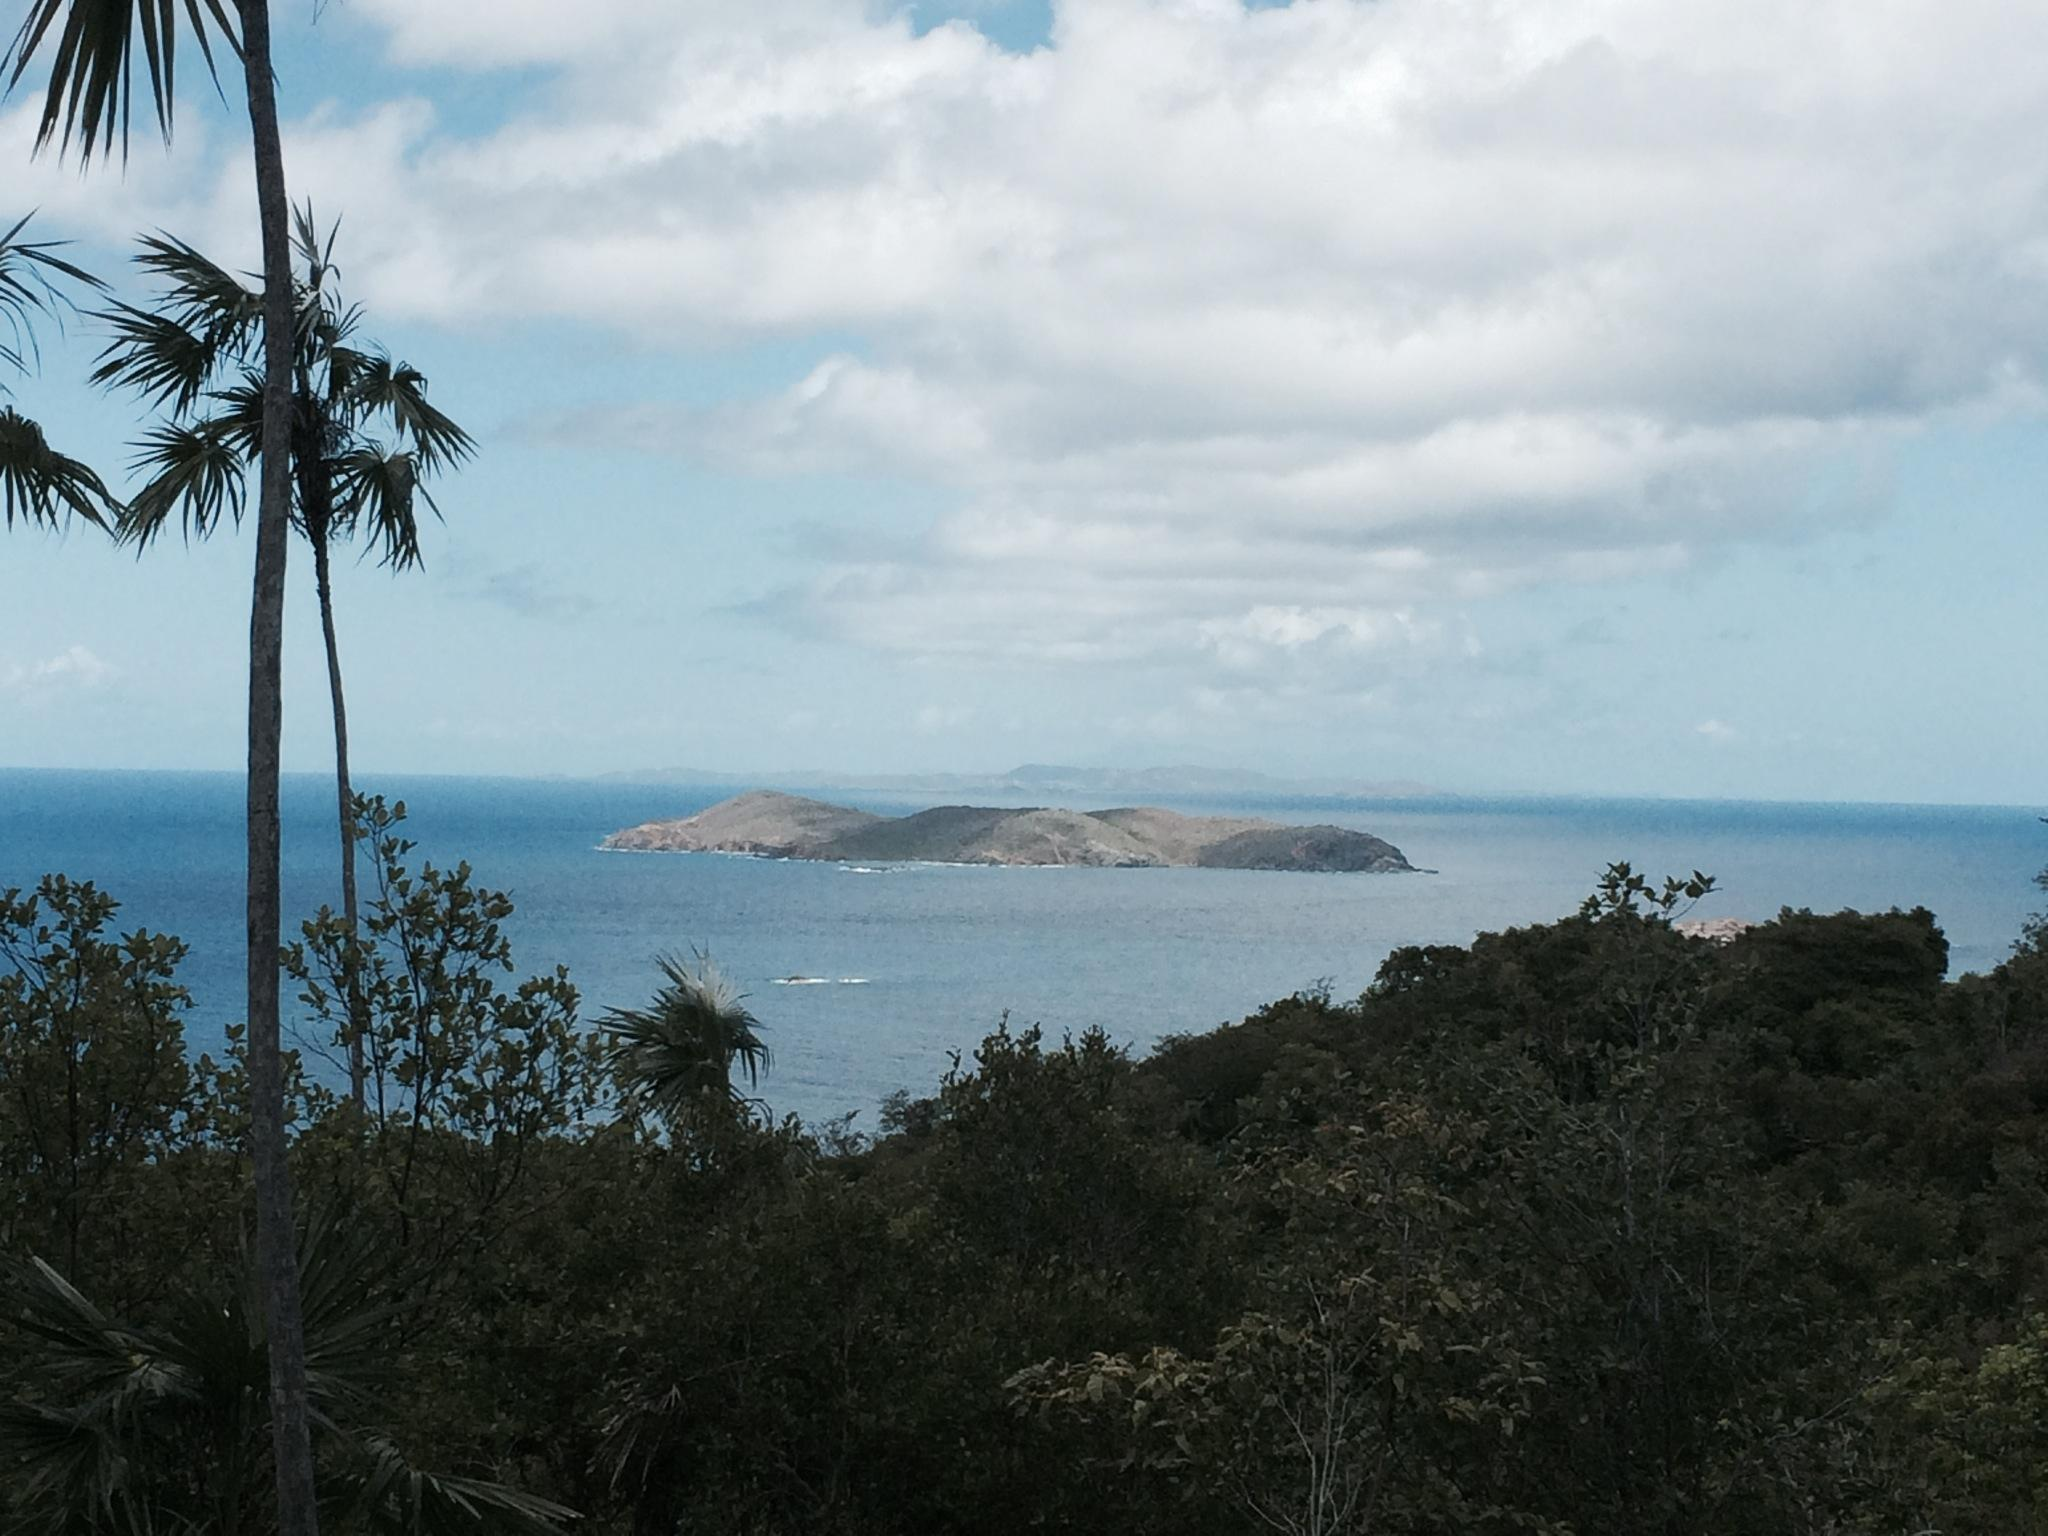 Views over Culebra and PR beyond